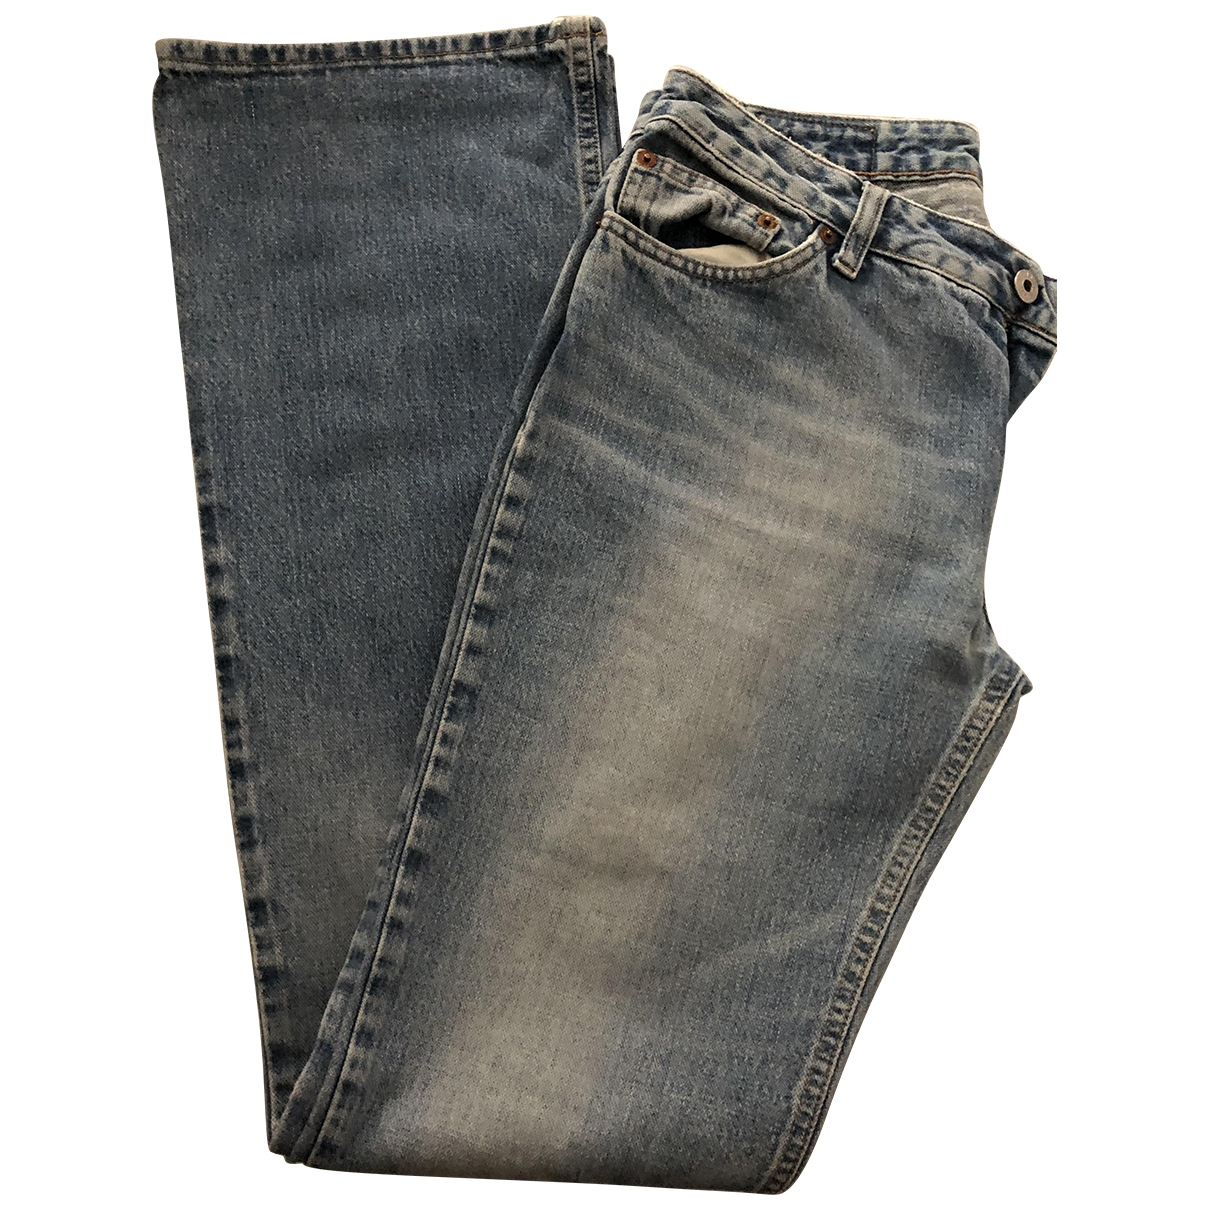 Replay \N Navy Denim - Jeans Jeans for Women 29 US